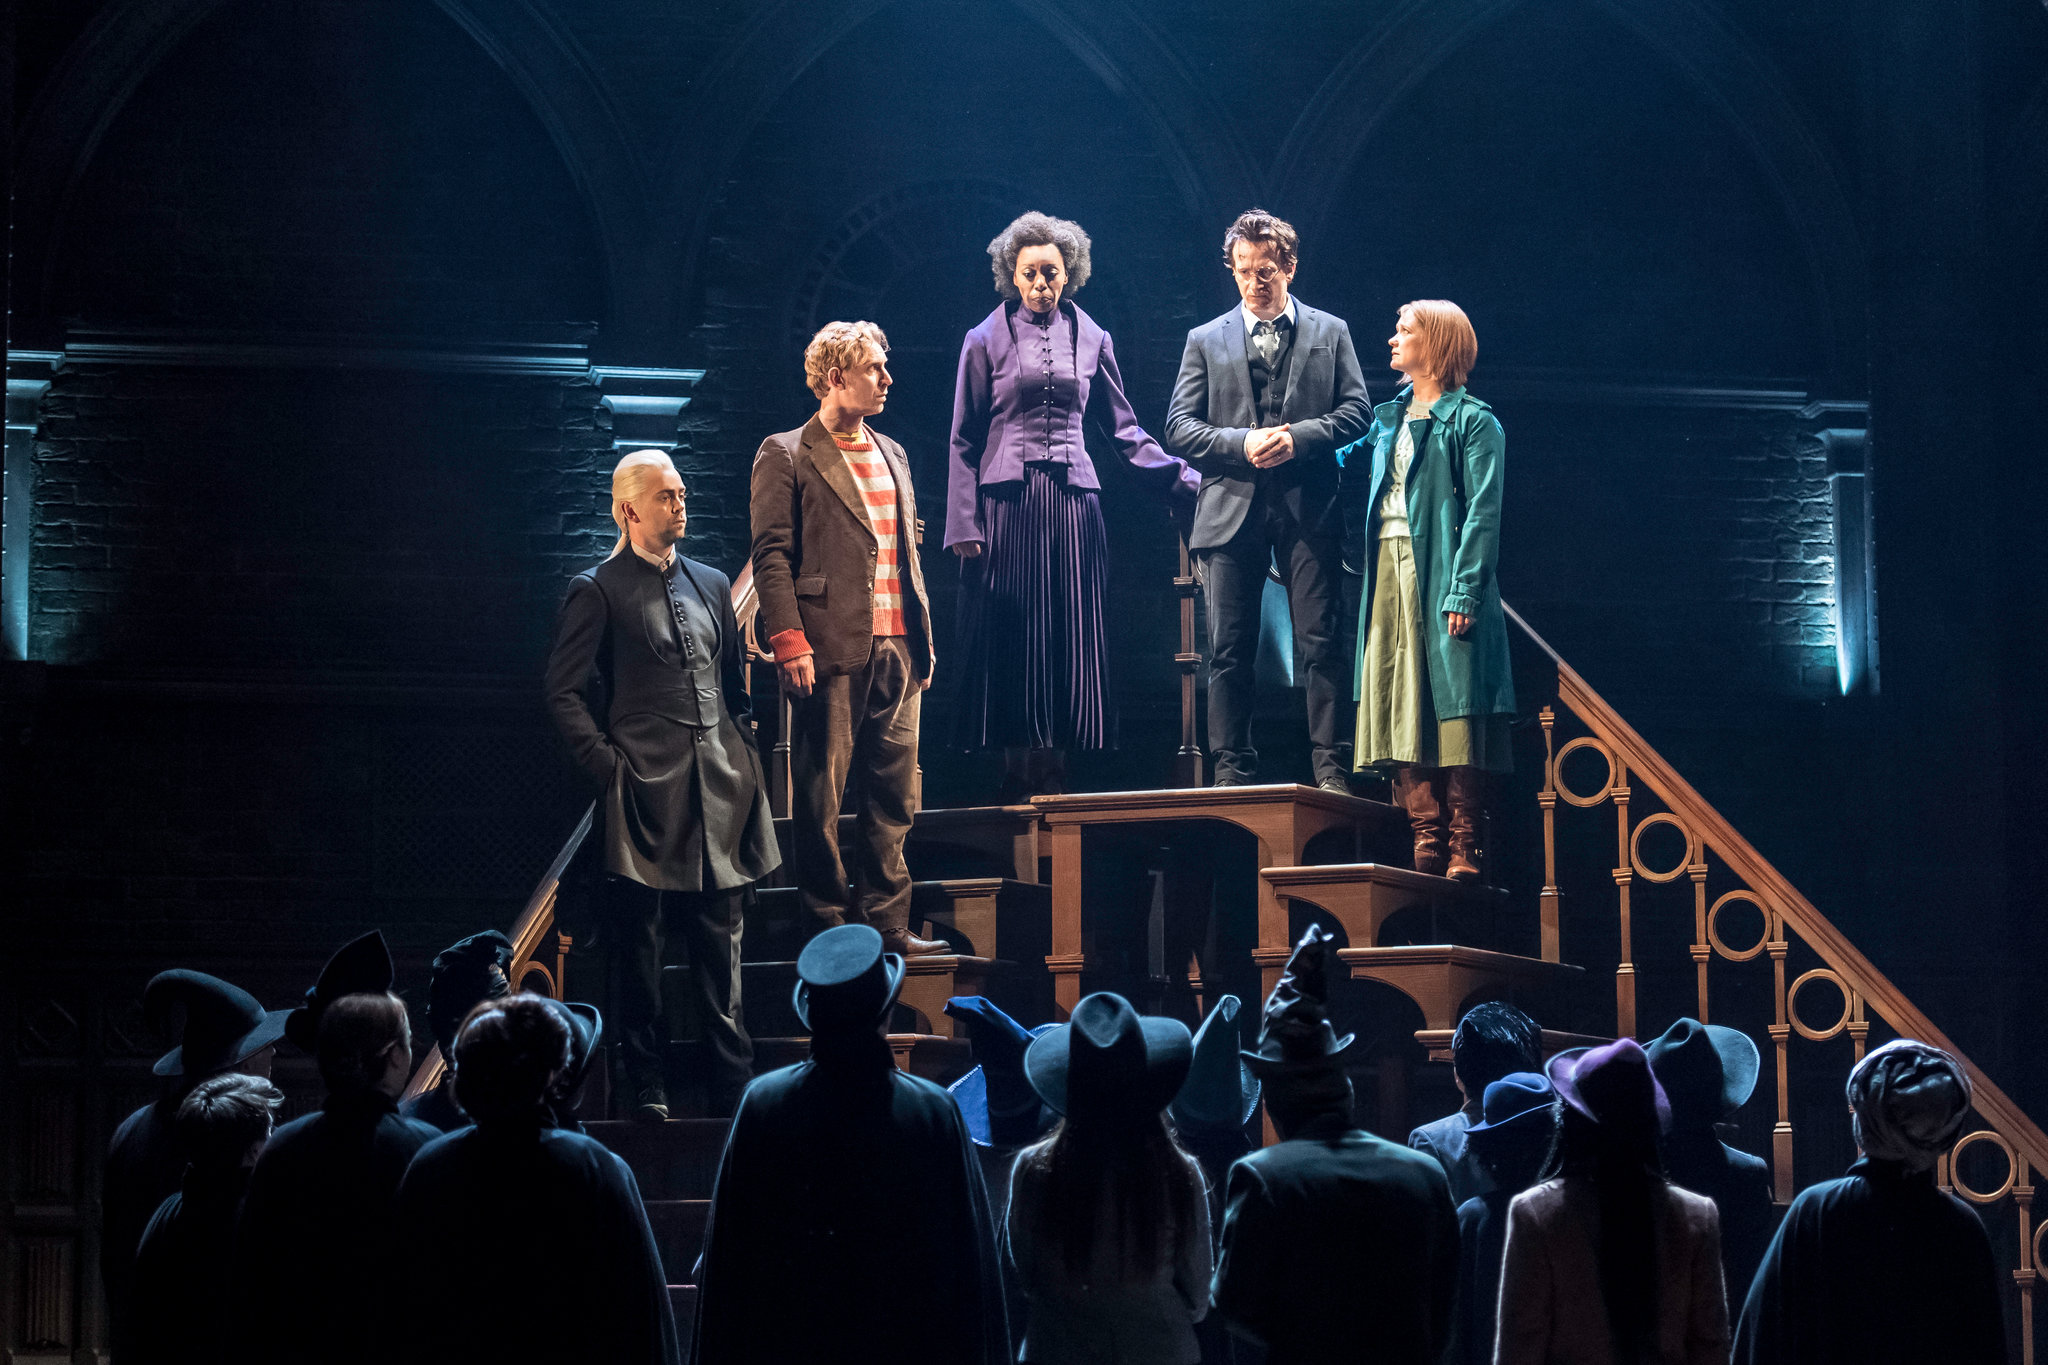 Harry Potter and The Cursed Child - Part 1 & 2 (10/15 7:30PM & 10/16 7:30PM) at Lyric Theatre